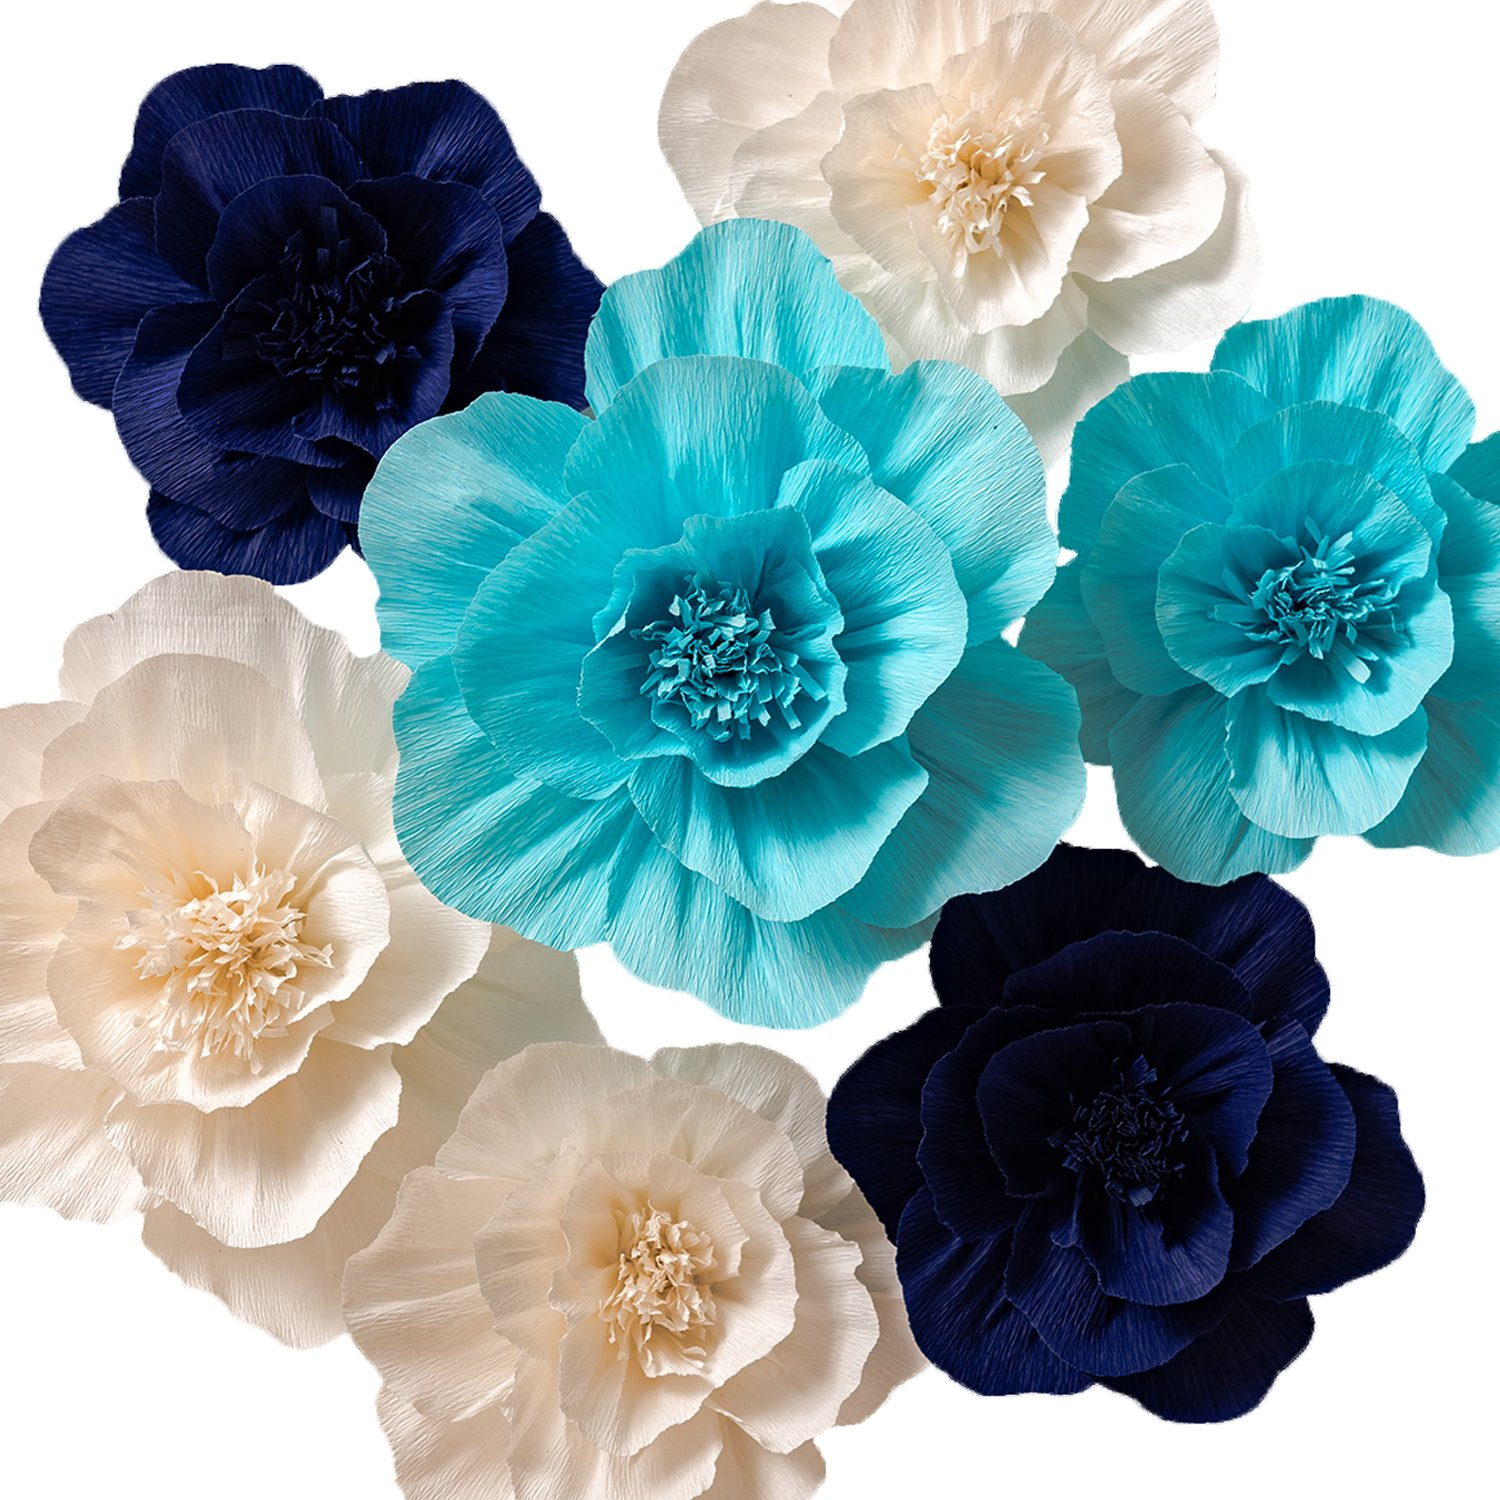 Key Spring Paper Flower Decorations Crepe Paper Flowers Giant